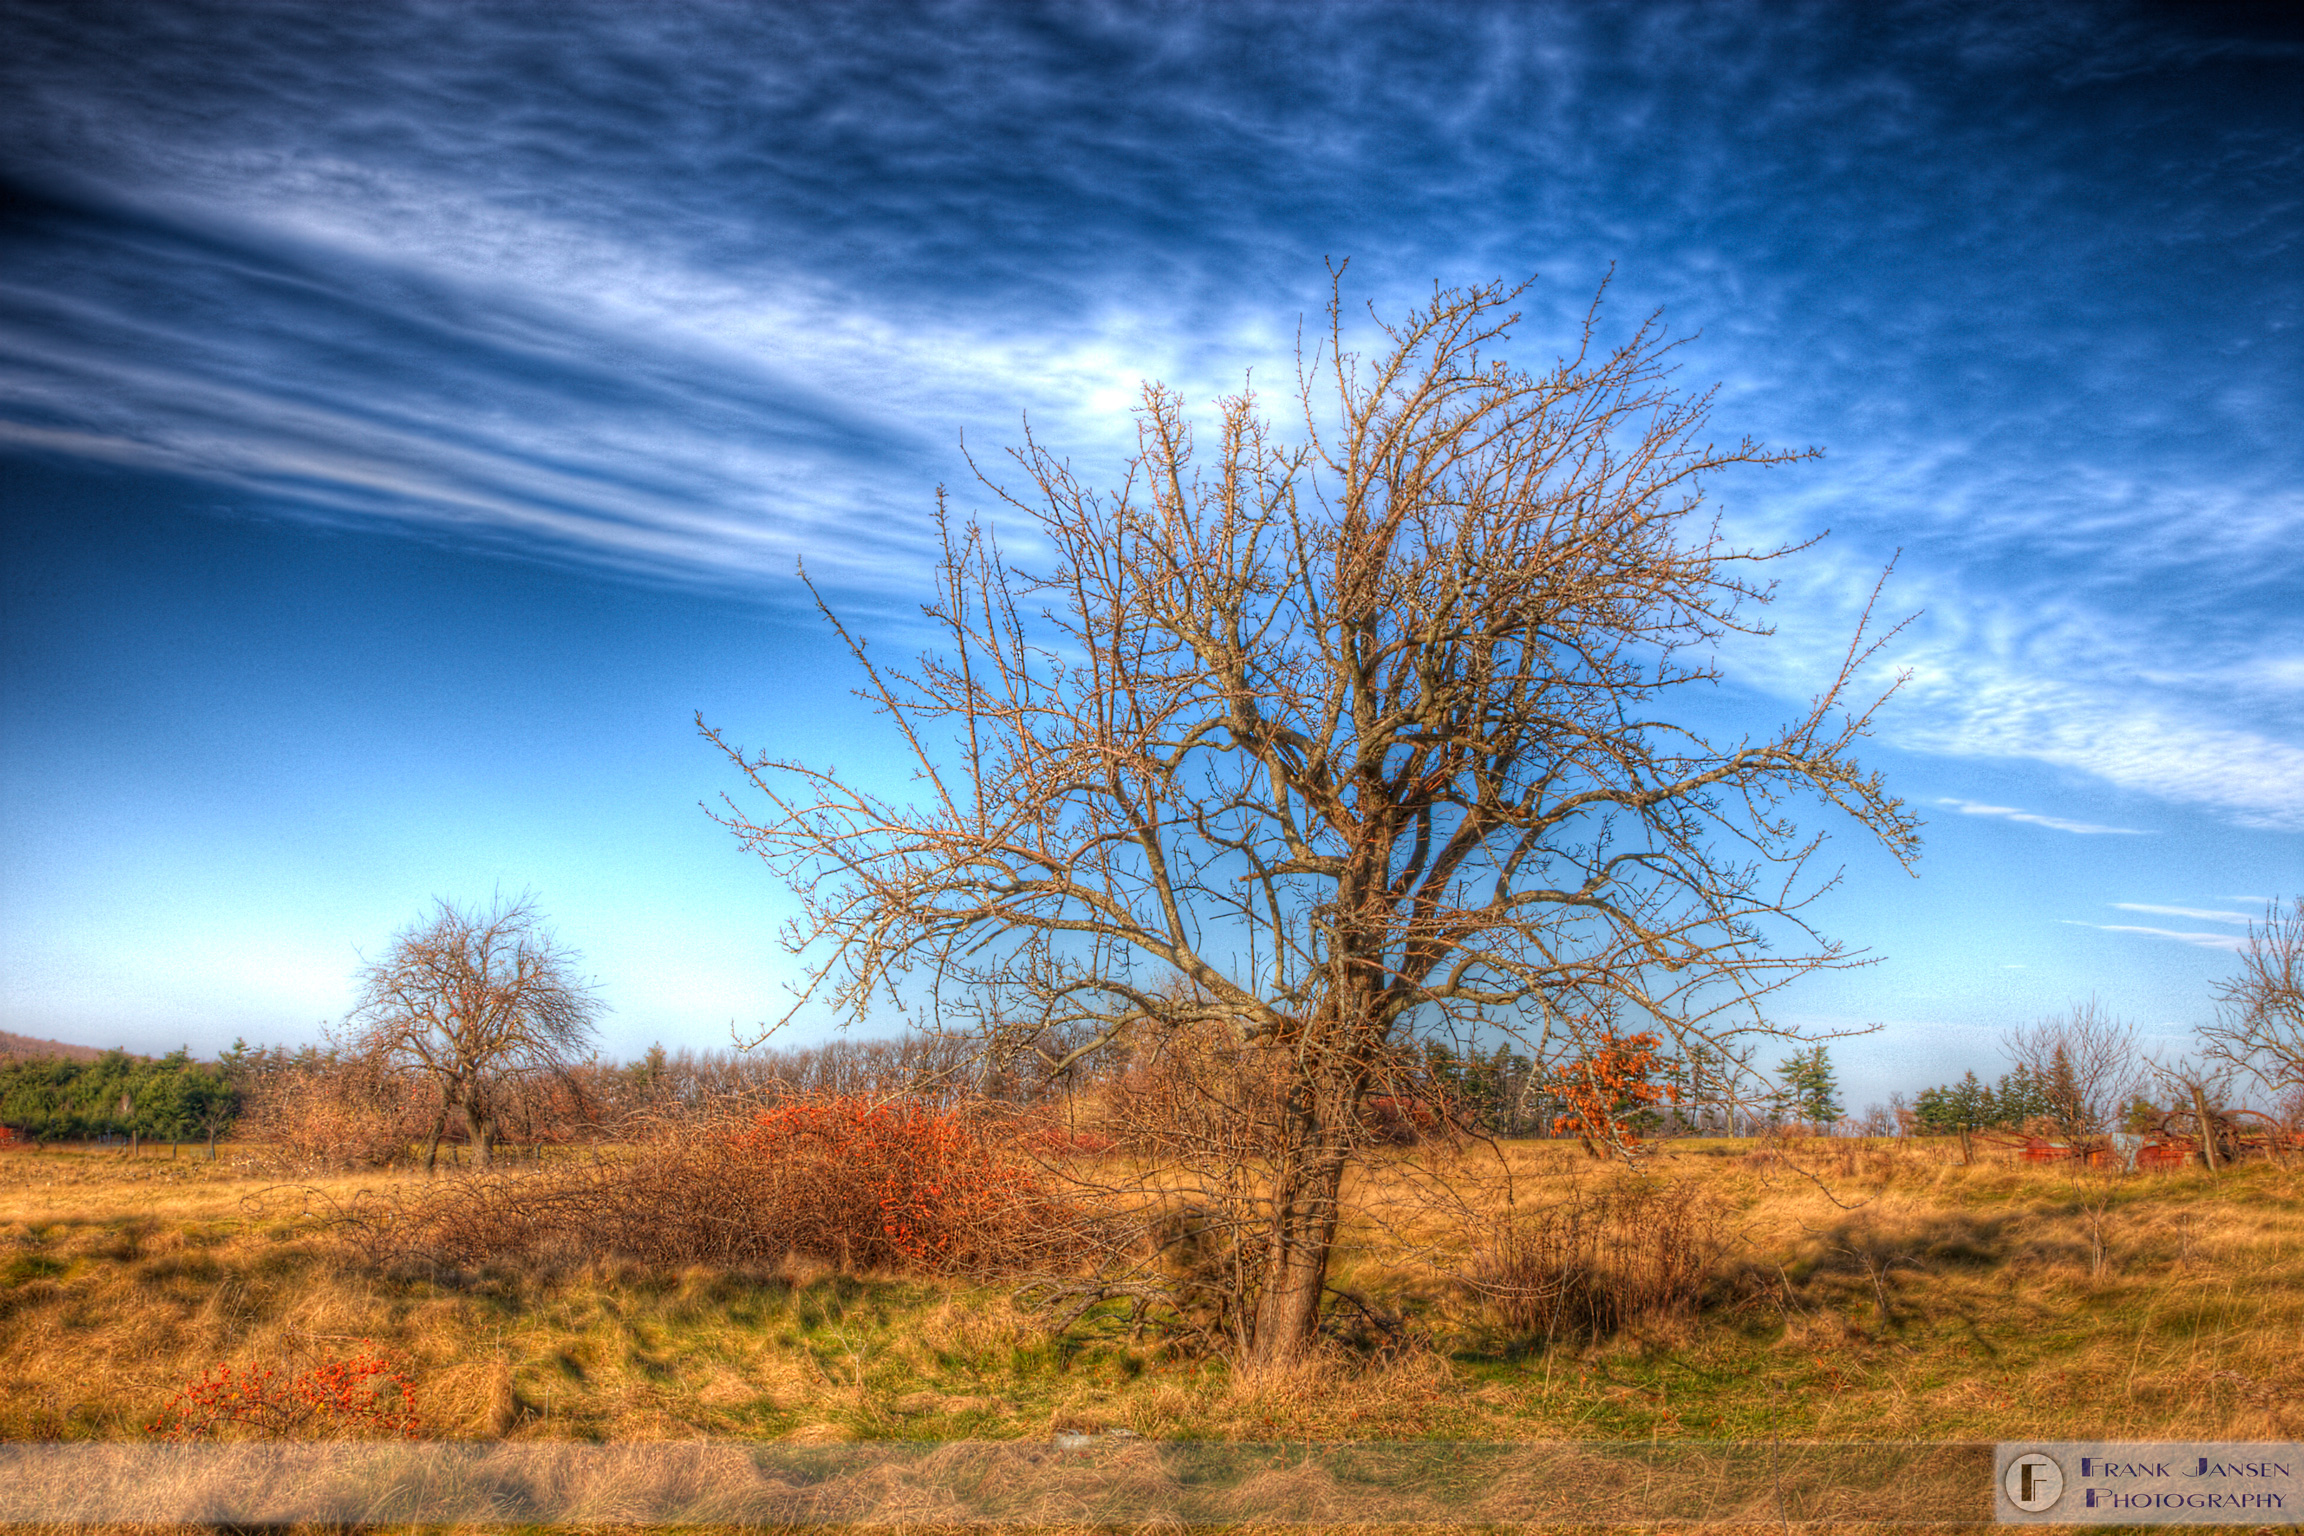 Persistence-Tree_14E6659_8_5_6_7-tumblr